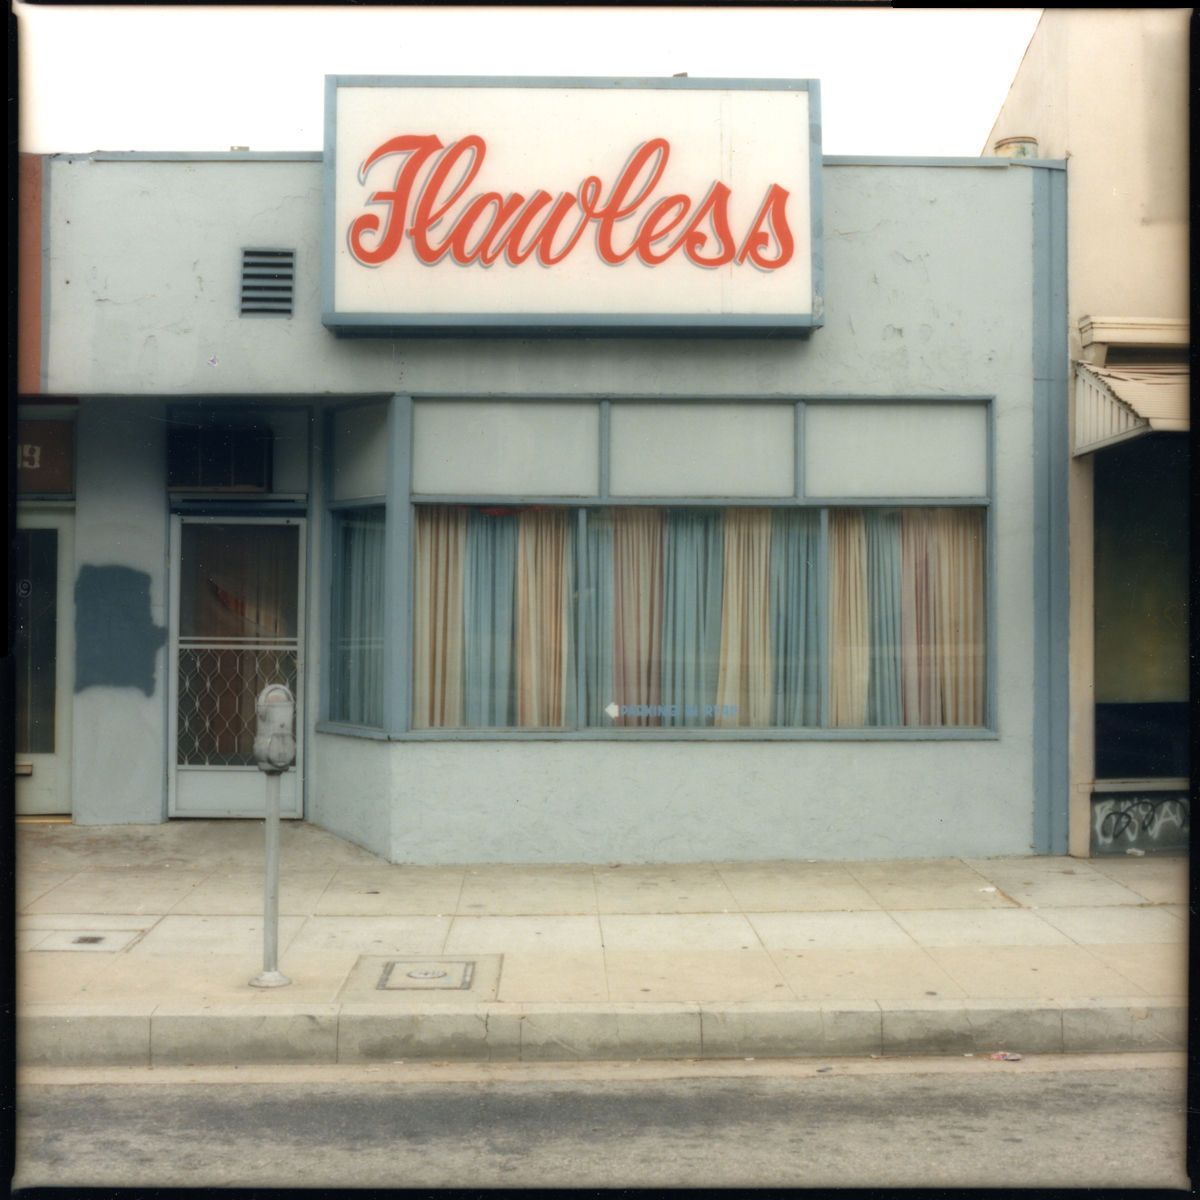 Flawless Hair Salon in Los Angeles.